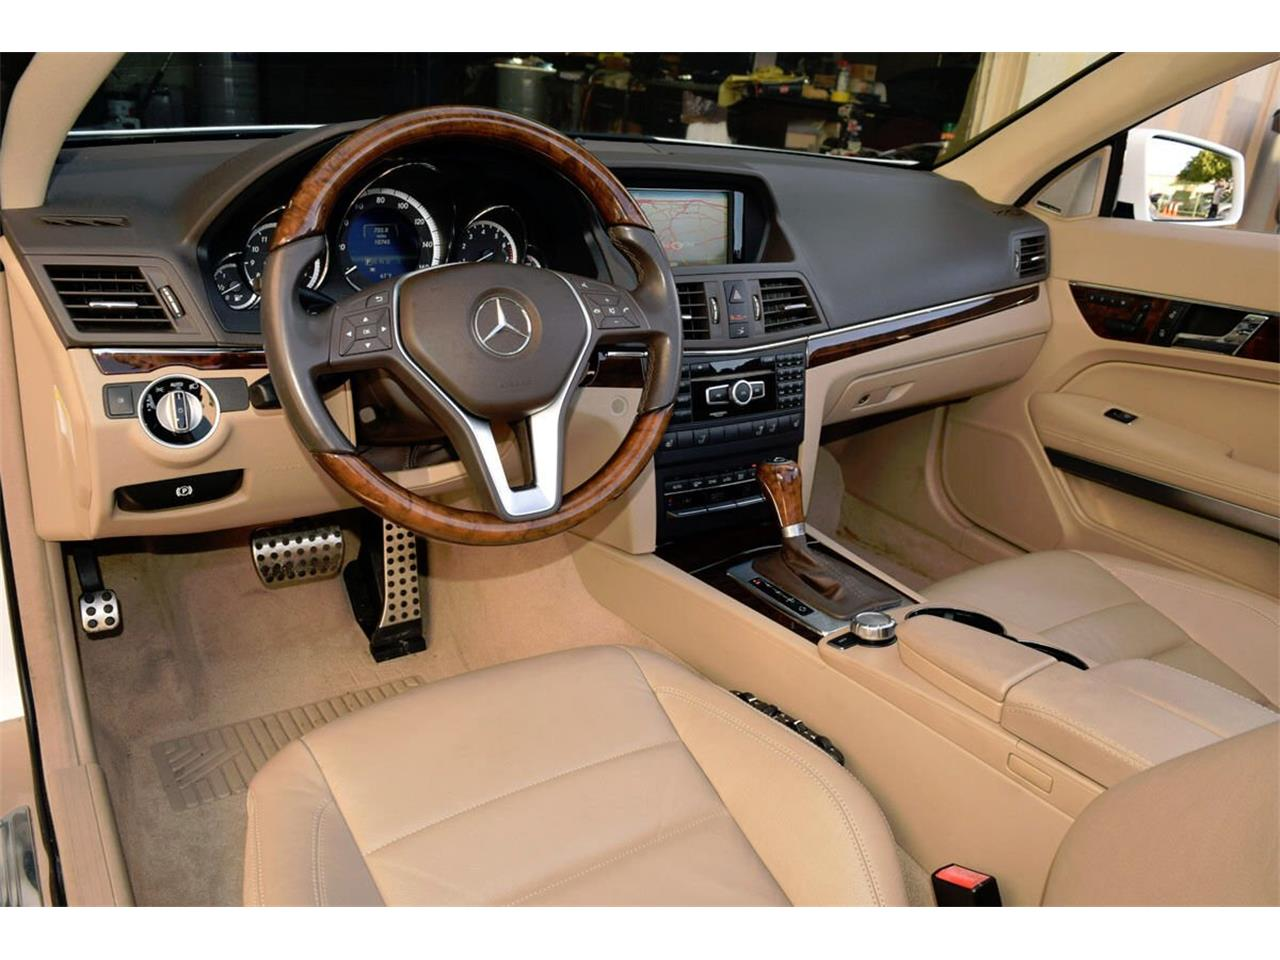 2013 Mercedes-Benz E-Class (CC-1419389) for sale in Fort Worth, Texas